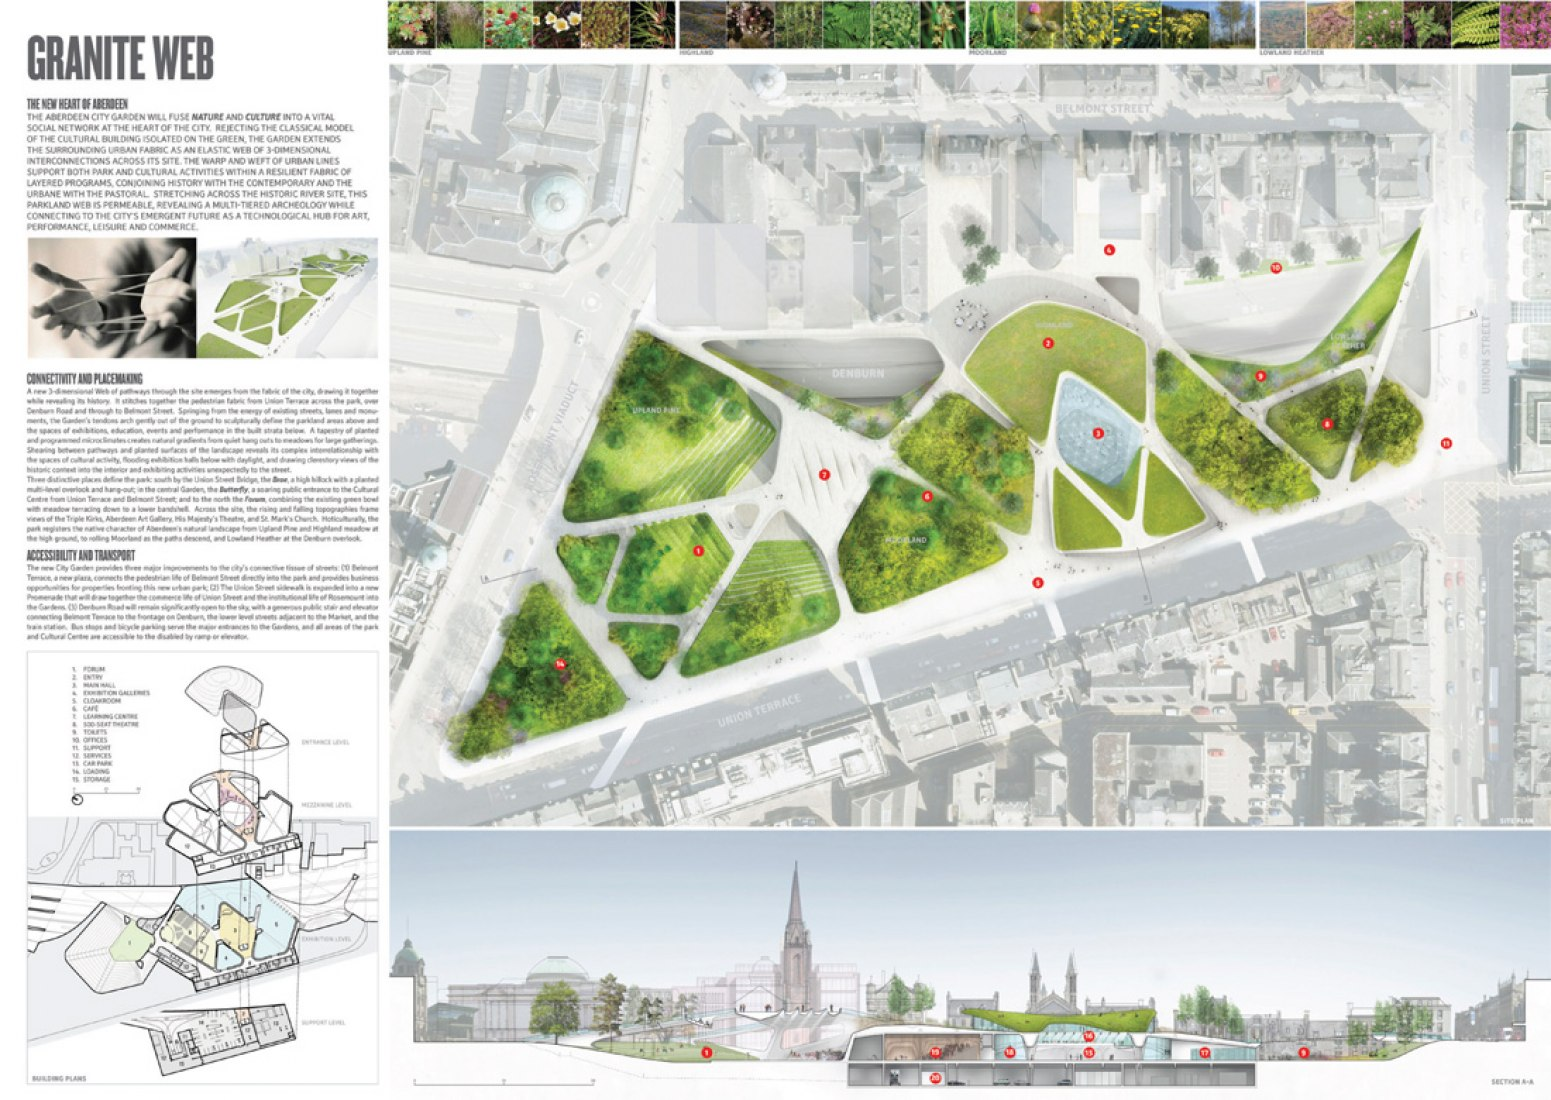 Competition, Aberdeen Garden City. By Diller Scofidio + Renfro.